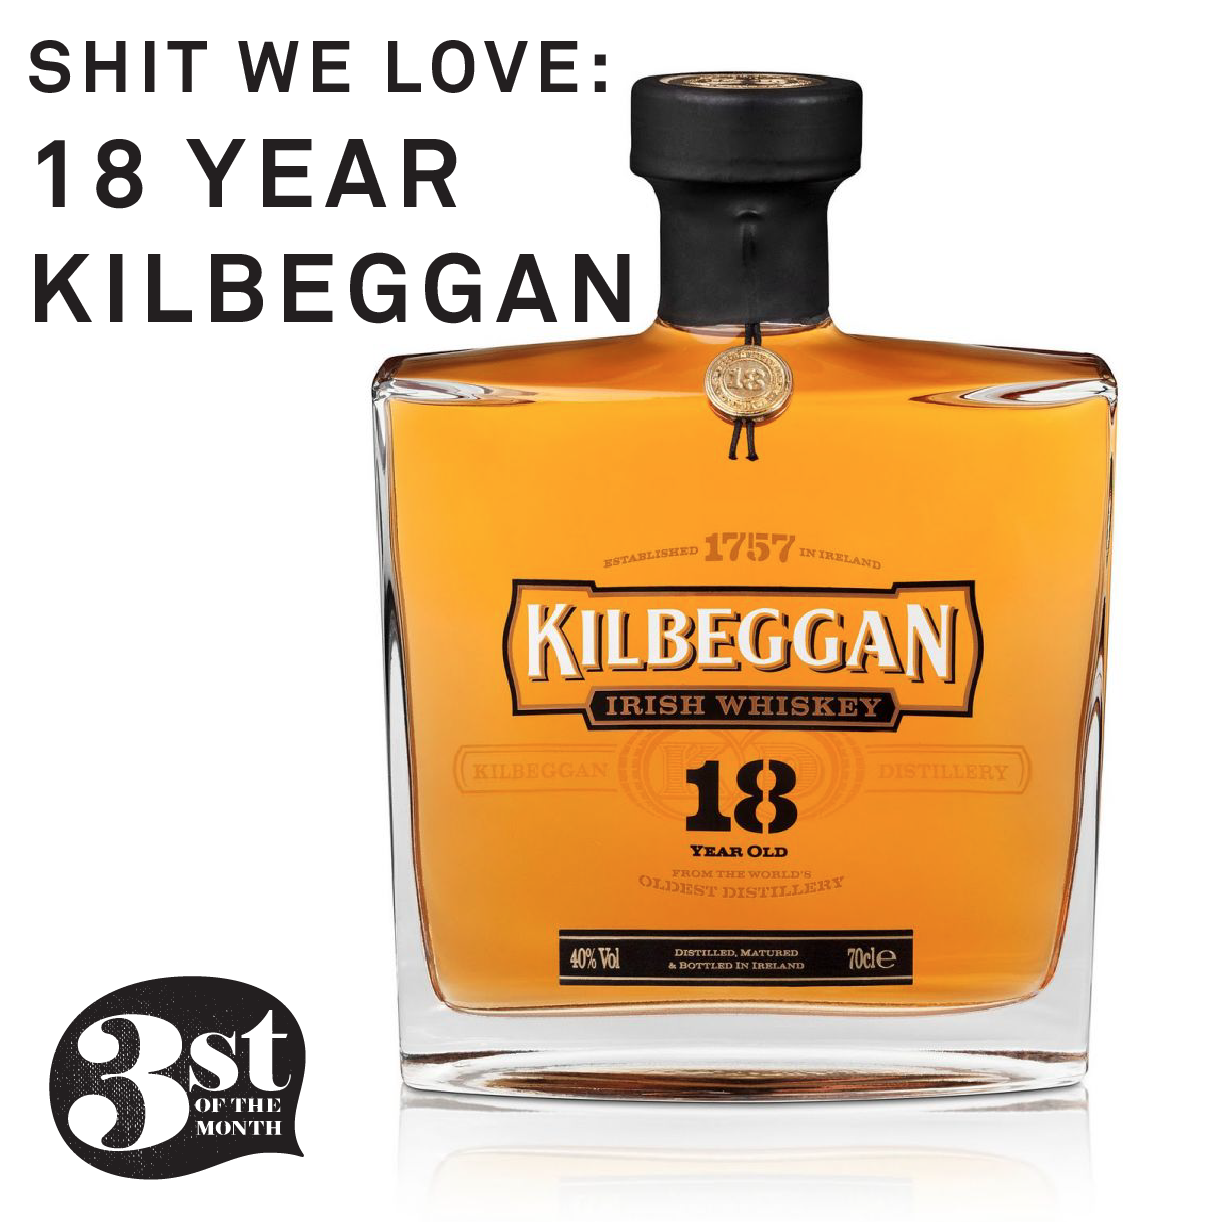 shit we love: 18 year old Kilbeggan